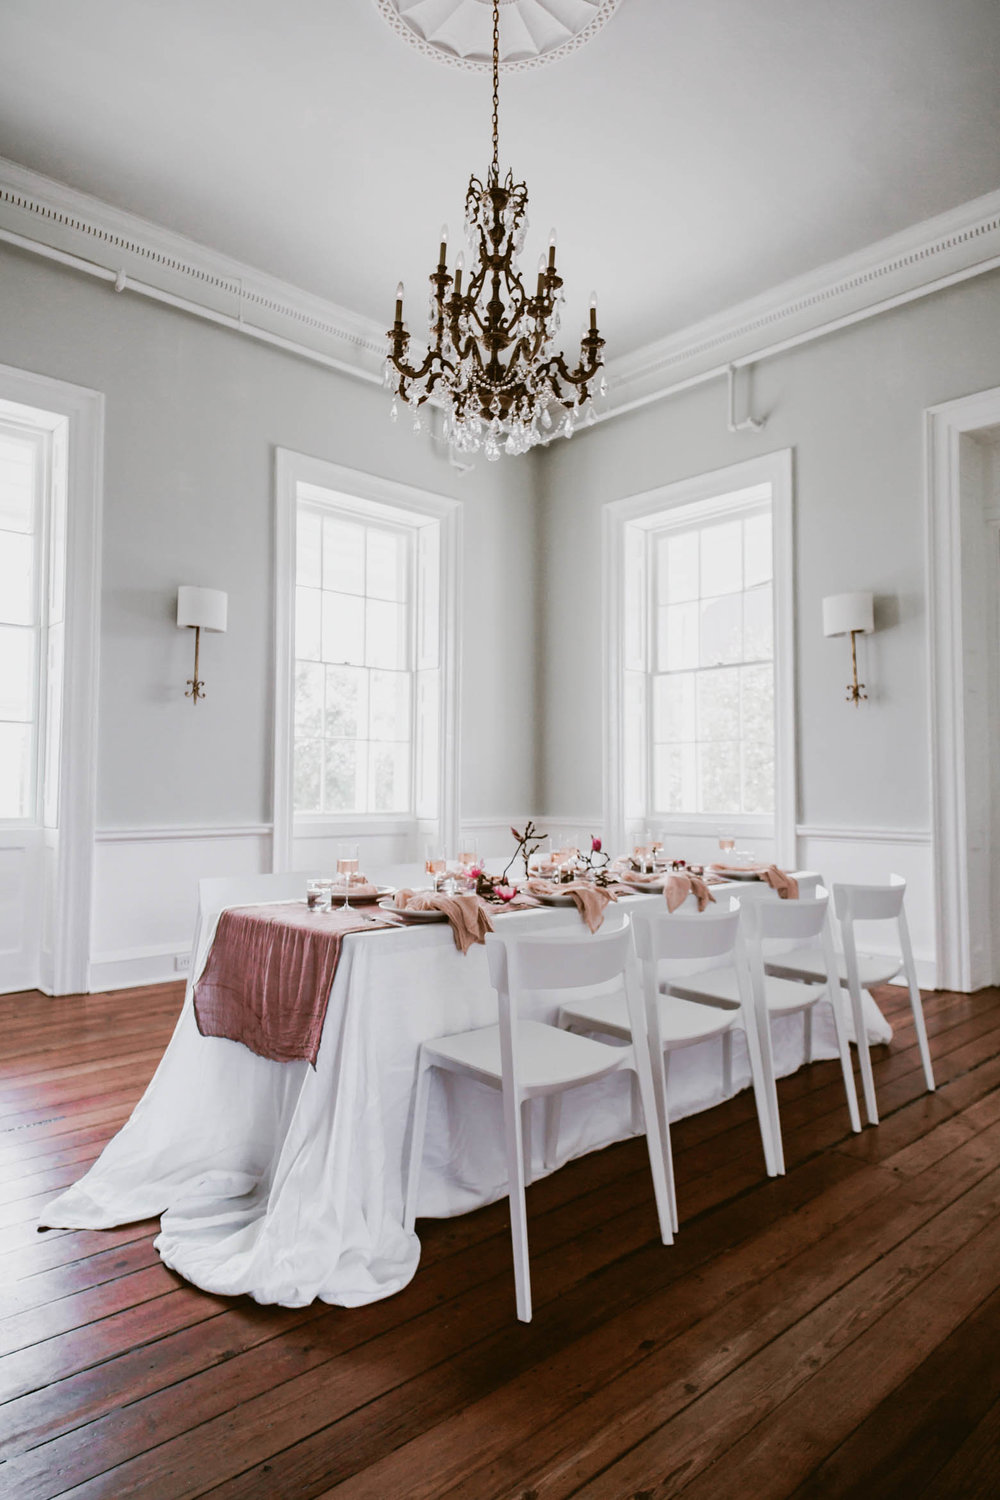 12th-Table-WEDDING-RENTALS-NASHVILLE-Design-Tips-Events-ENTERTAINING-Charleston-Styled-Shoot-GadsenHouse-10.jpg